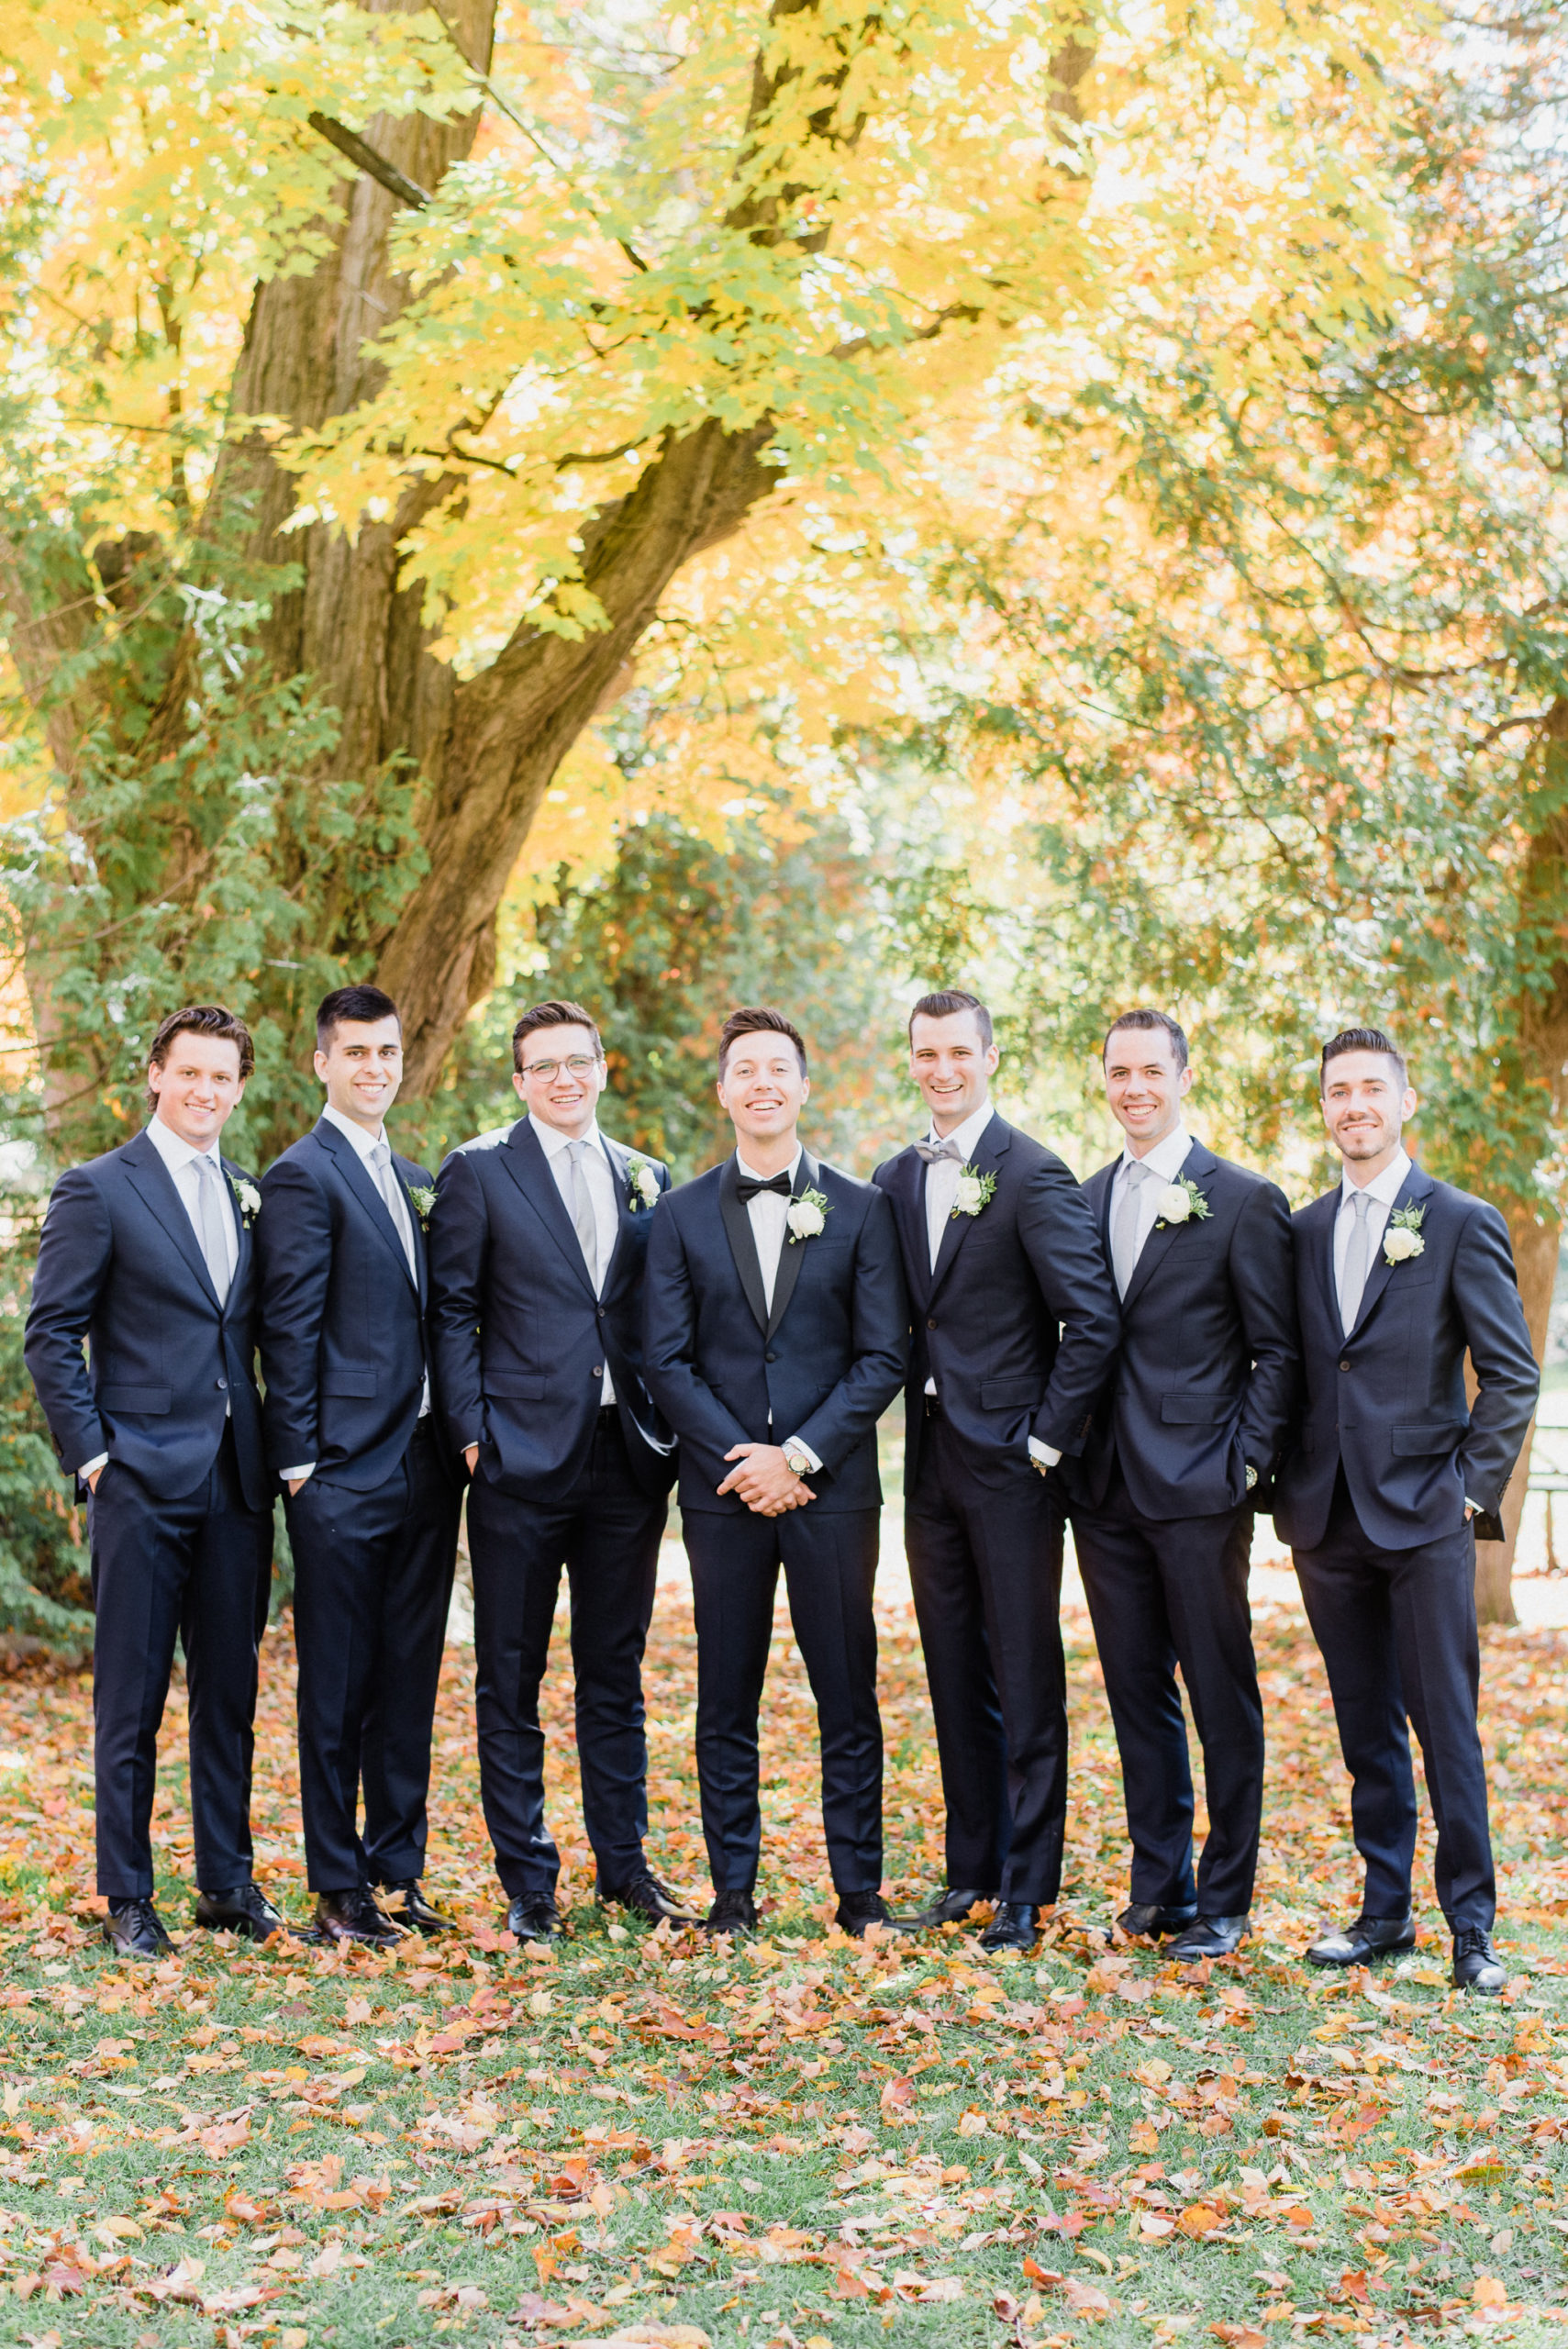 Groom and groomsmen in navy blue tuxes by Jenn Kavanagh Photography